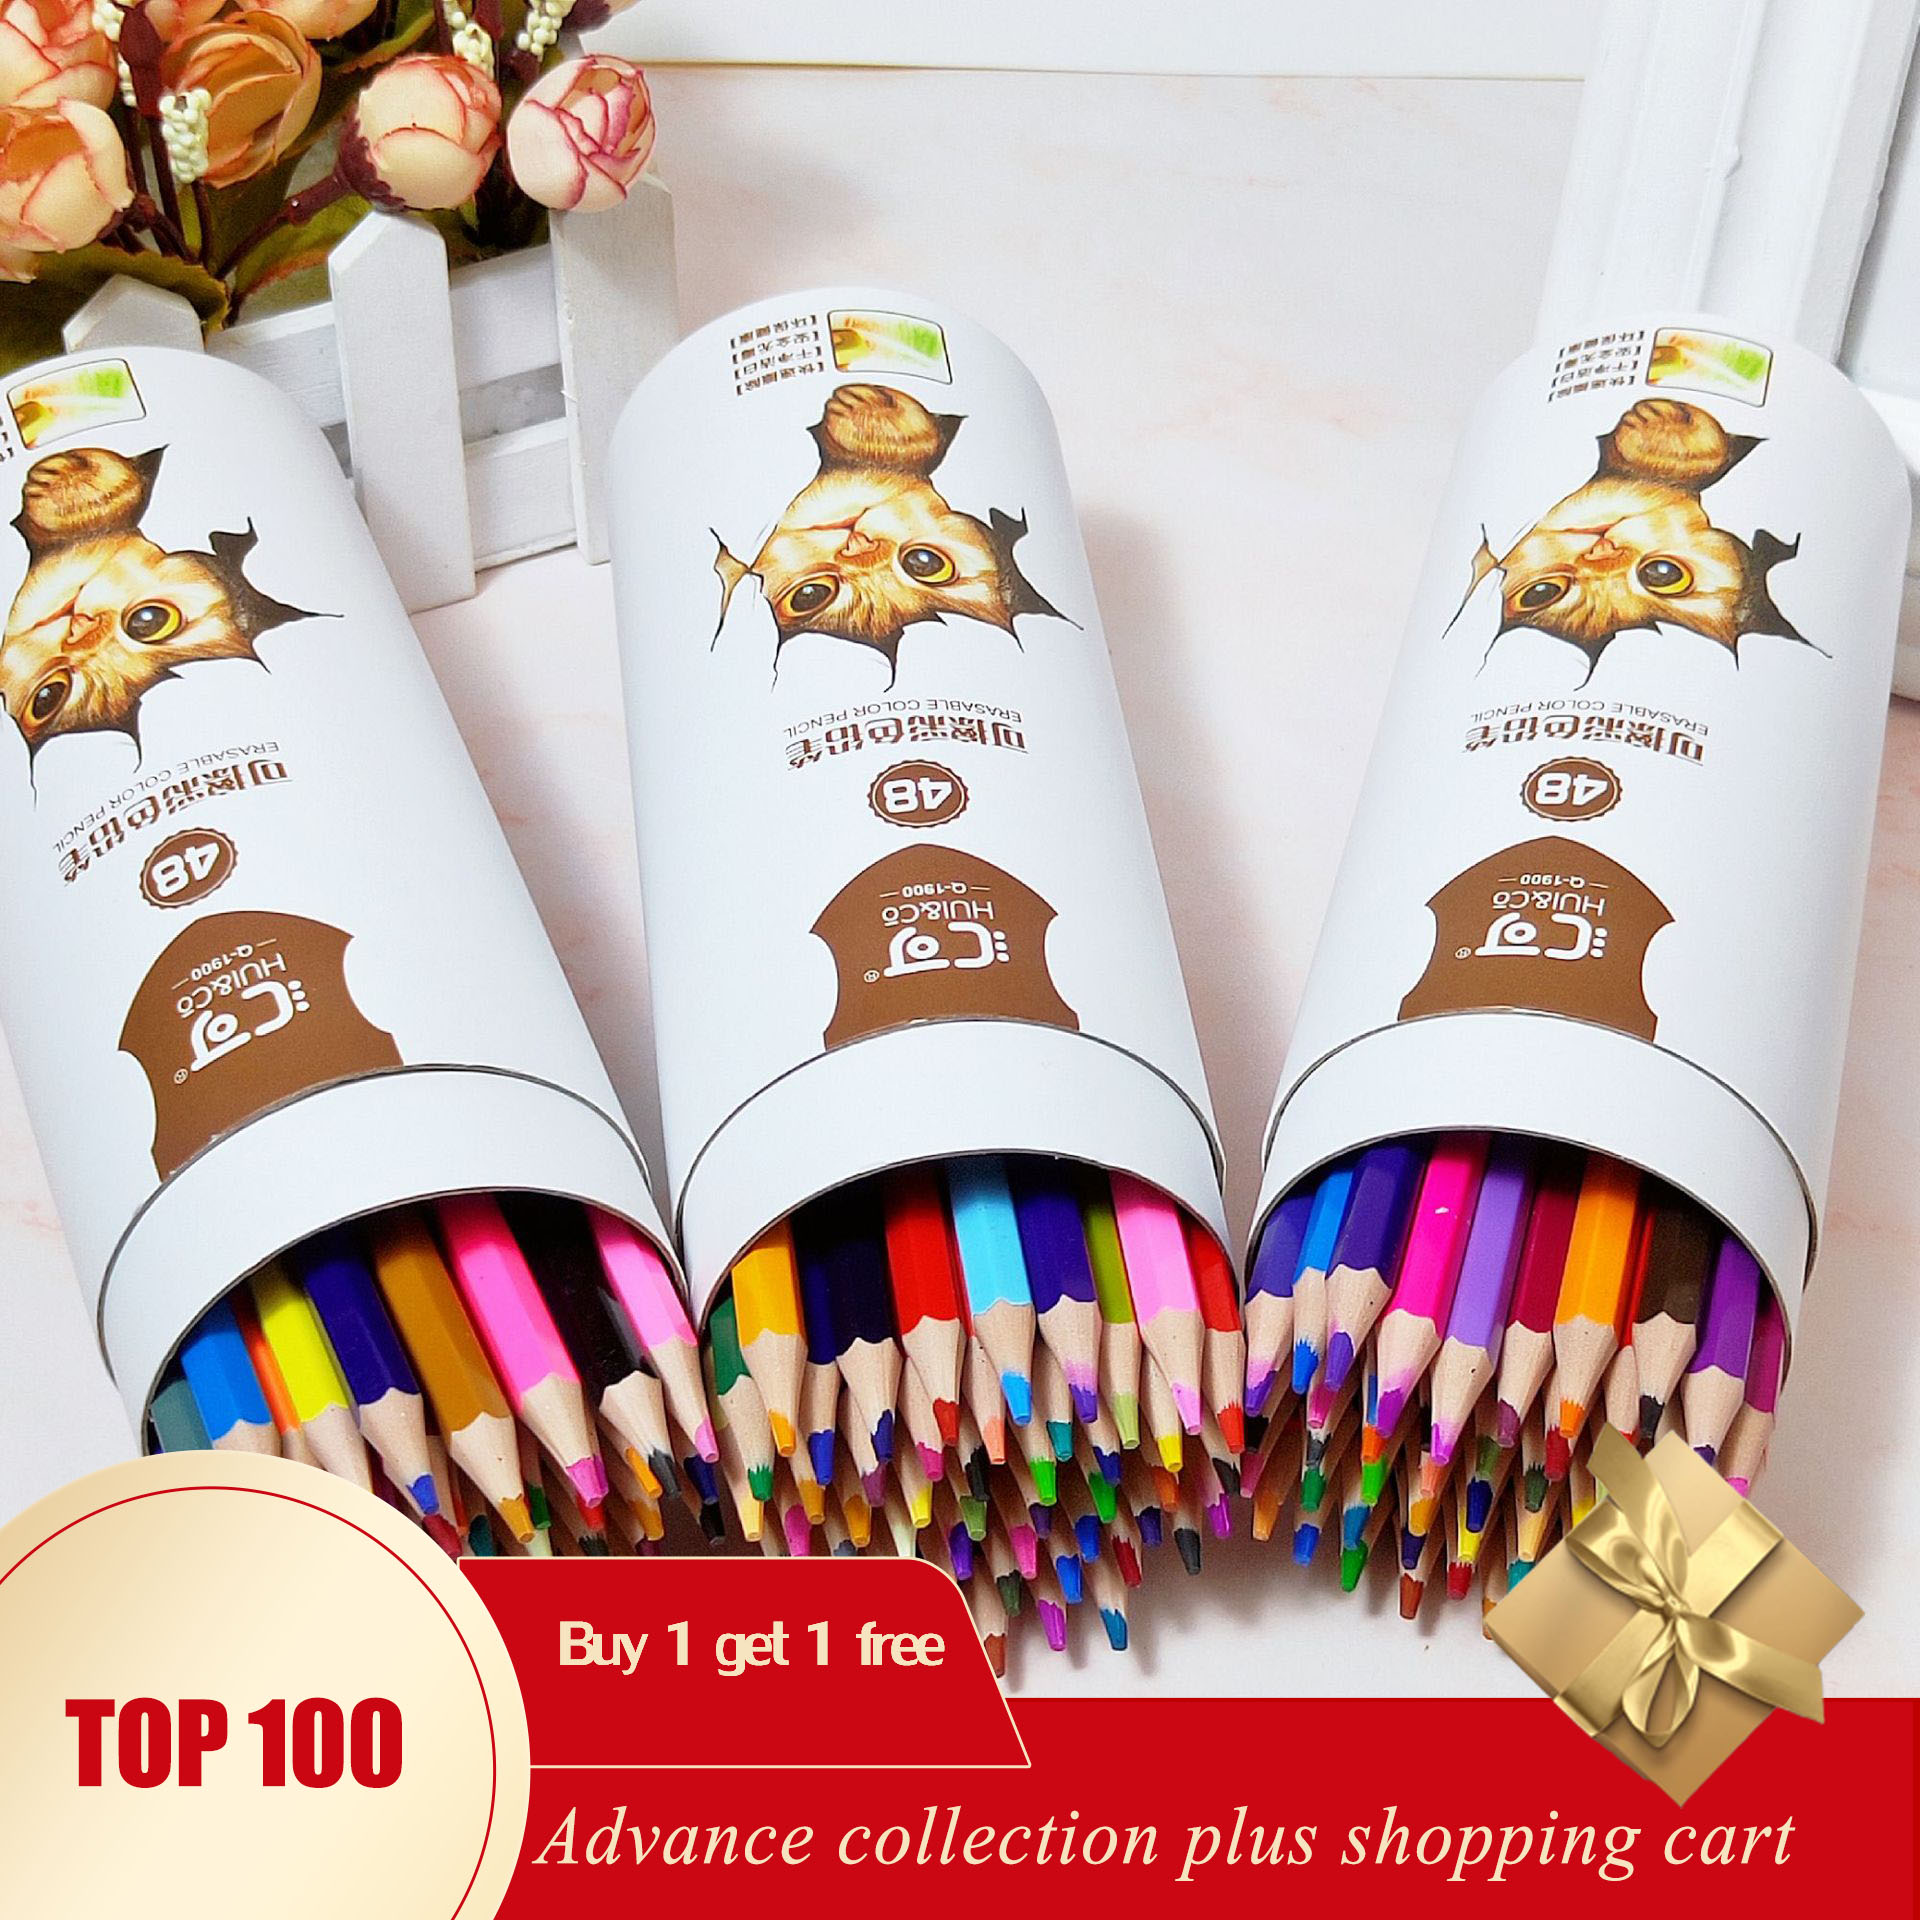 Lapices De Colores Material Escolar Papelaria Kit Pastel Pencils For Drawing Kids Dibujos Para Colorear Erasable Art Supplies